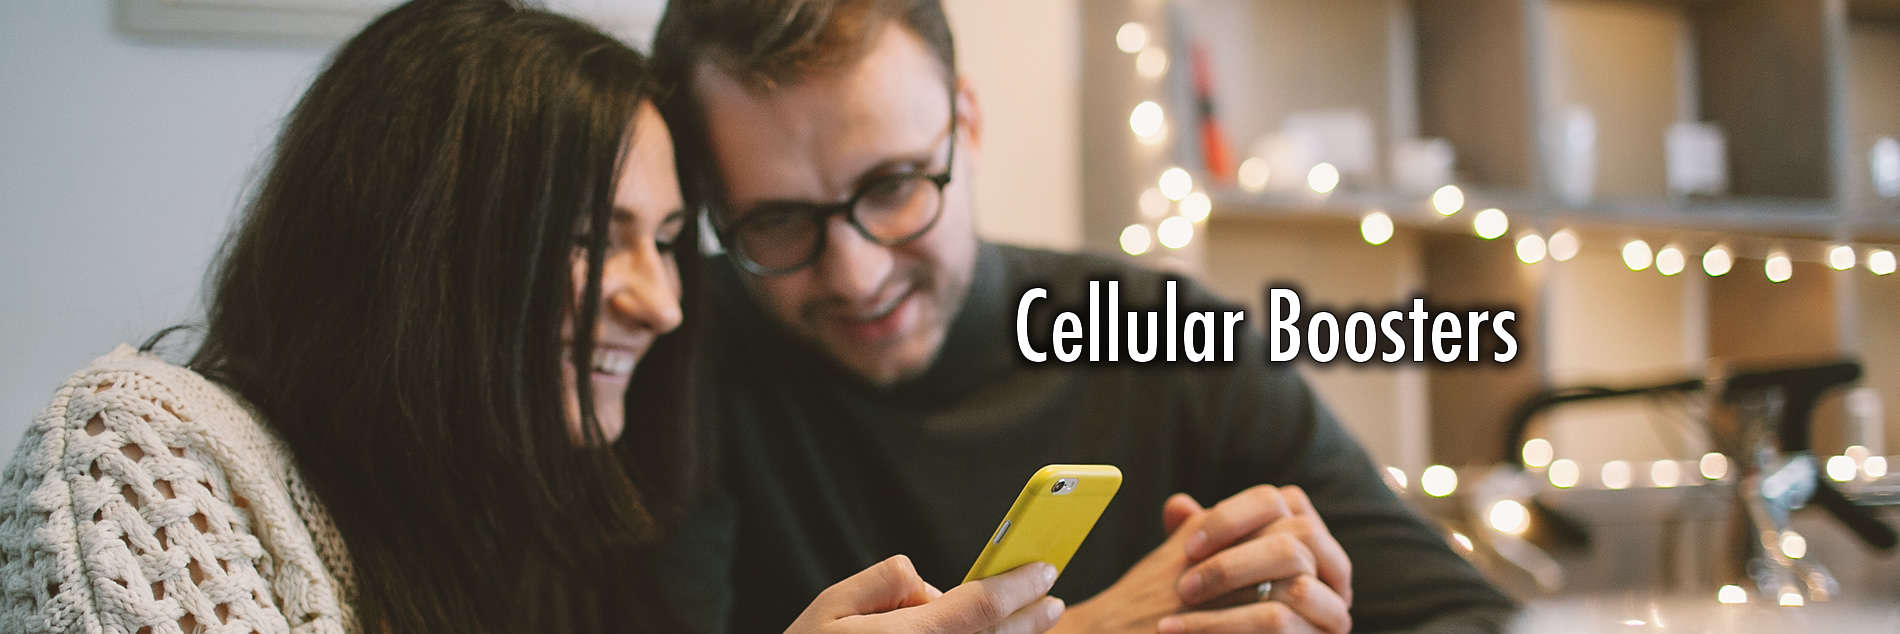 cellular boosters